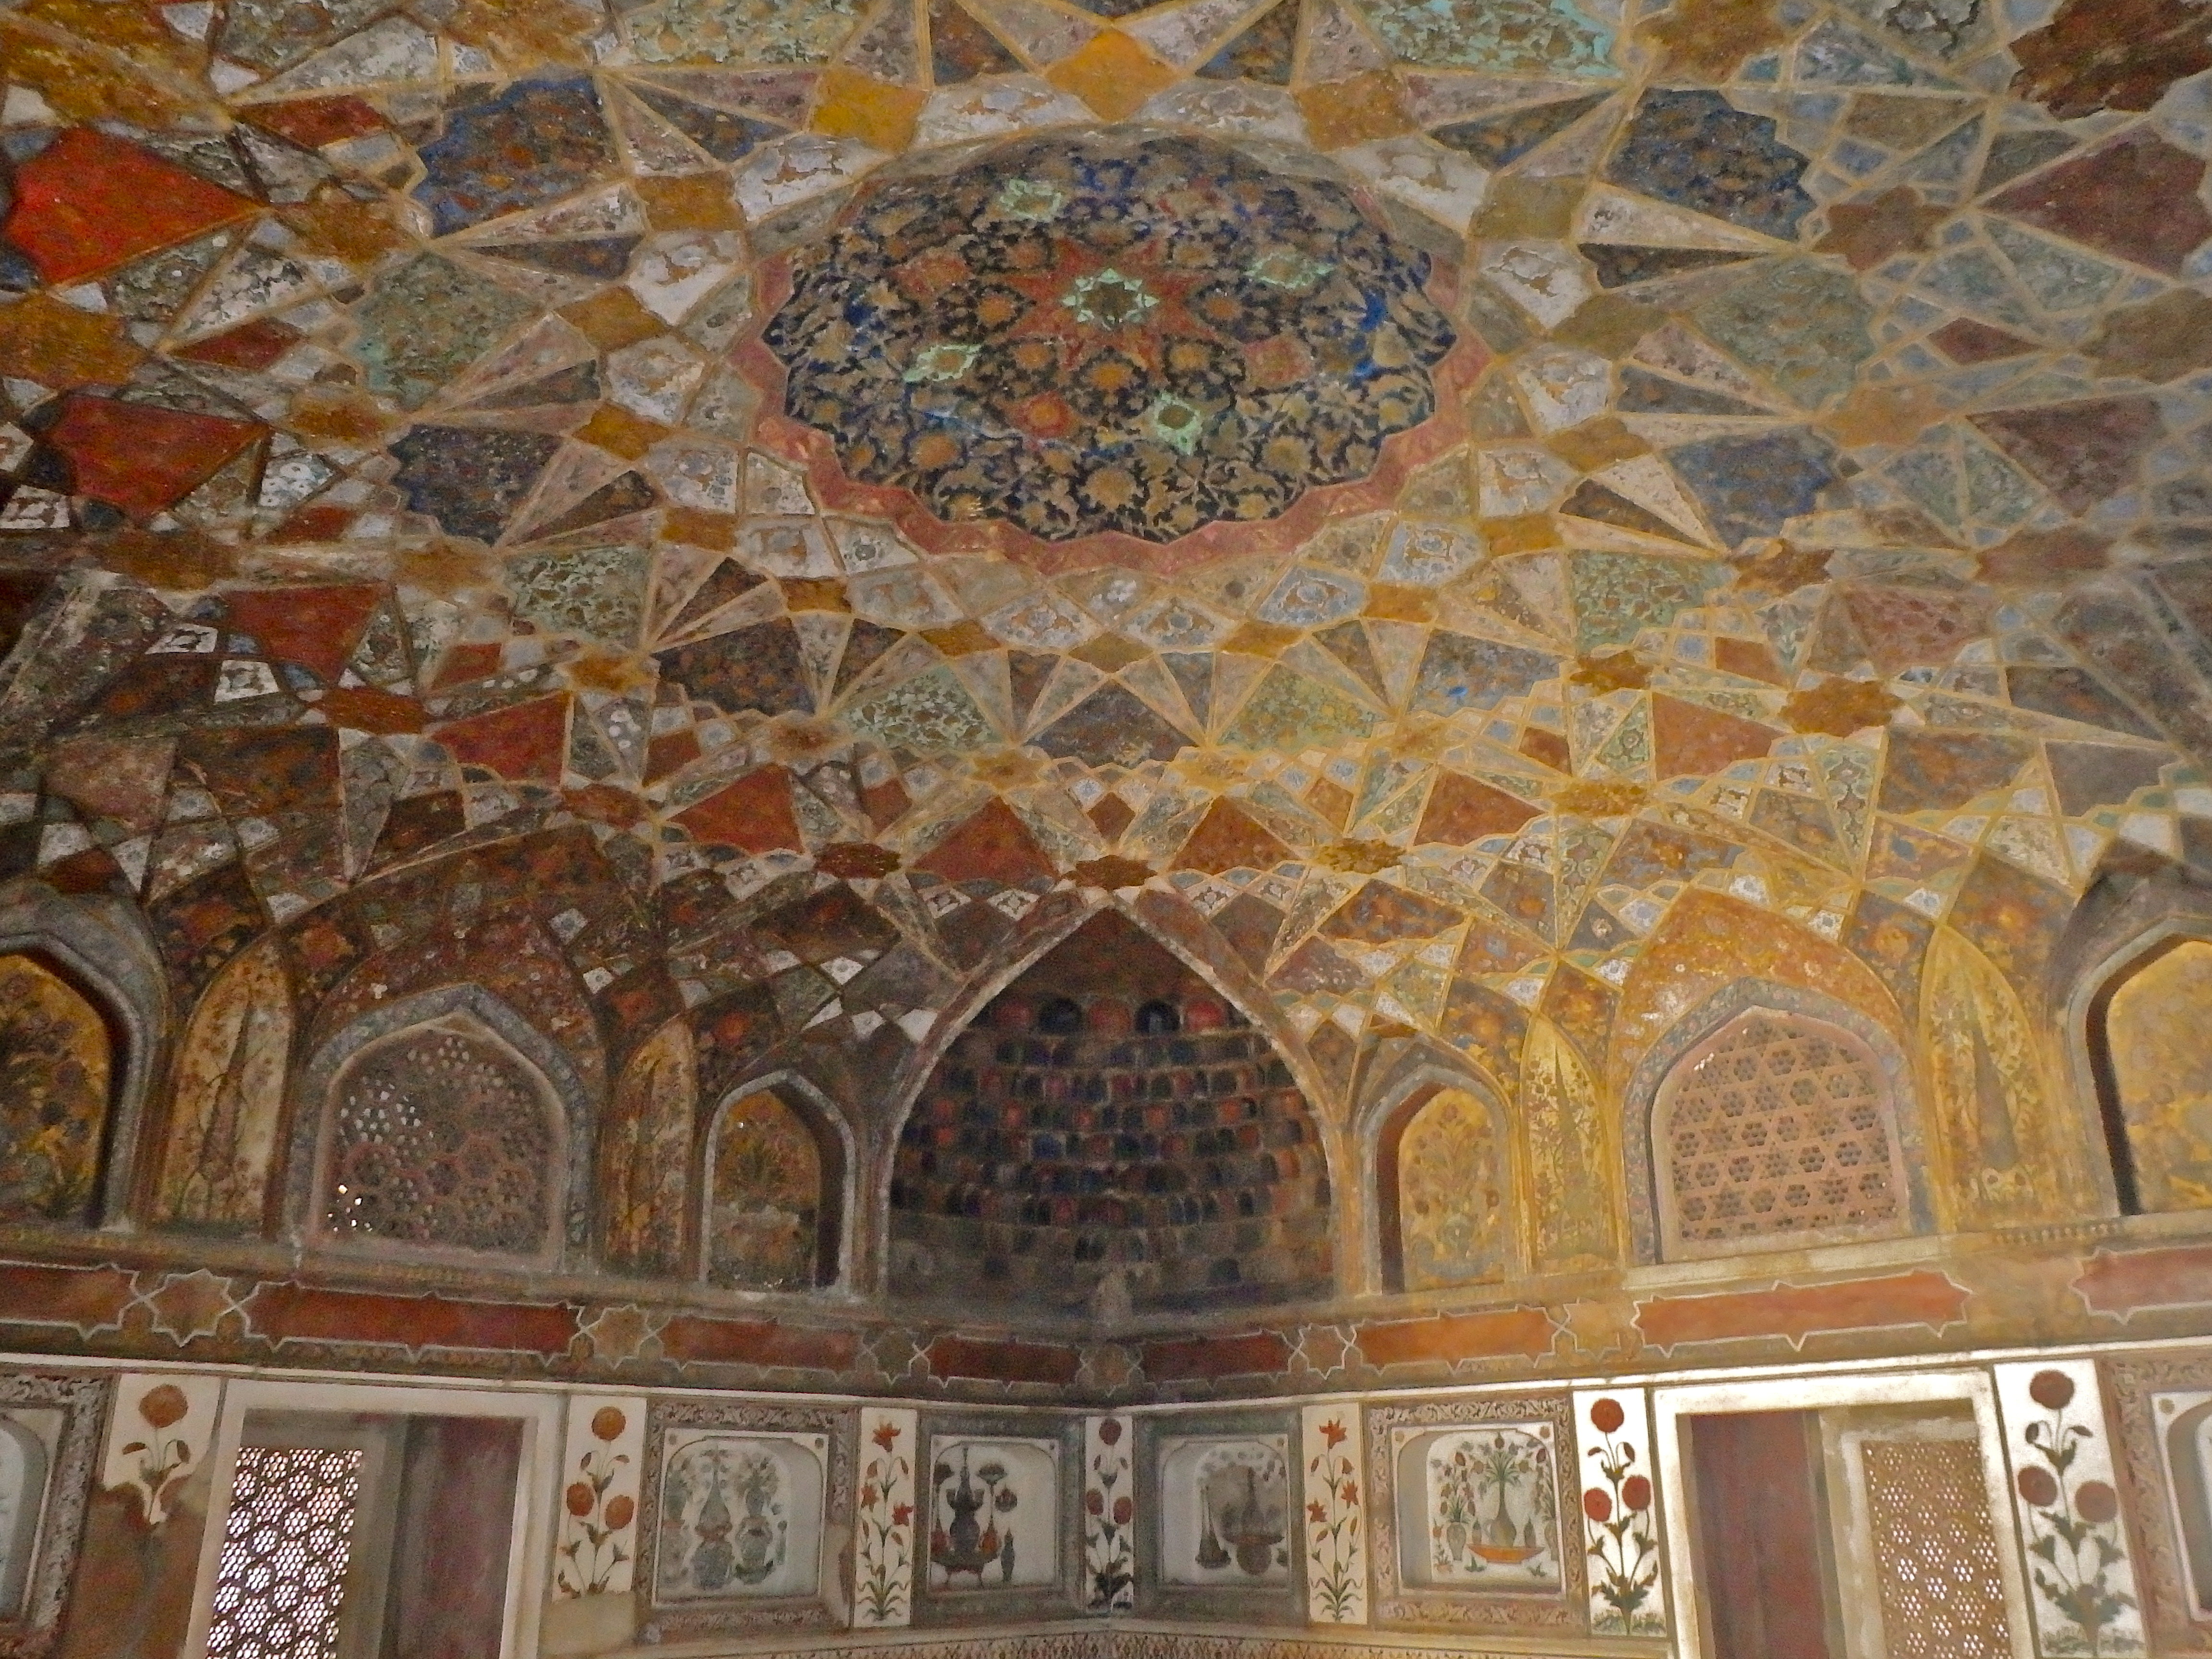 Baby Taj, Agra, India Tomb of I'timad-ud-Daulah interesting places to visit in agra travel guide